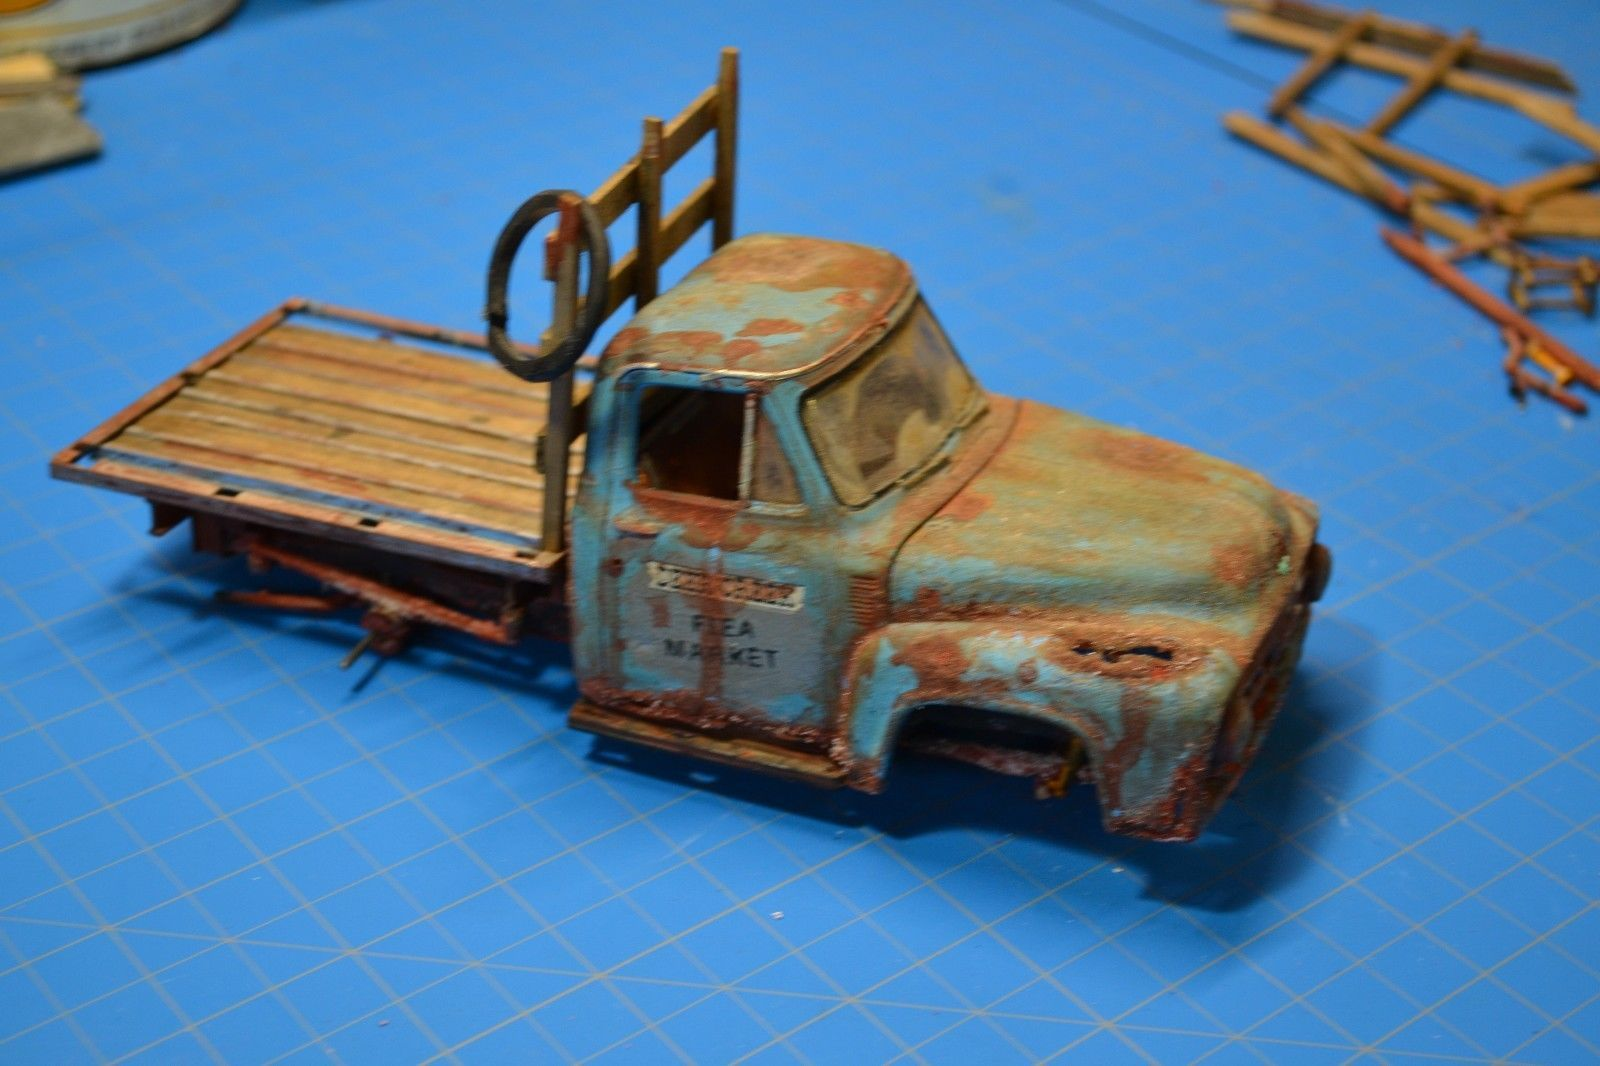 Pro Built 1953 53 Ford F100 Pickup Truck Weathered Detailed Diorama Flea Market | eBay & Pro Built 1953 53 Ford F100 Pickup Truck Weathered Detailed ... markmcfarlin.com